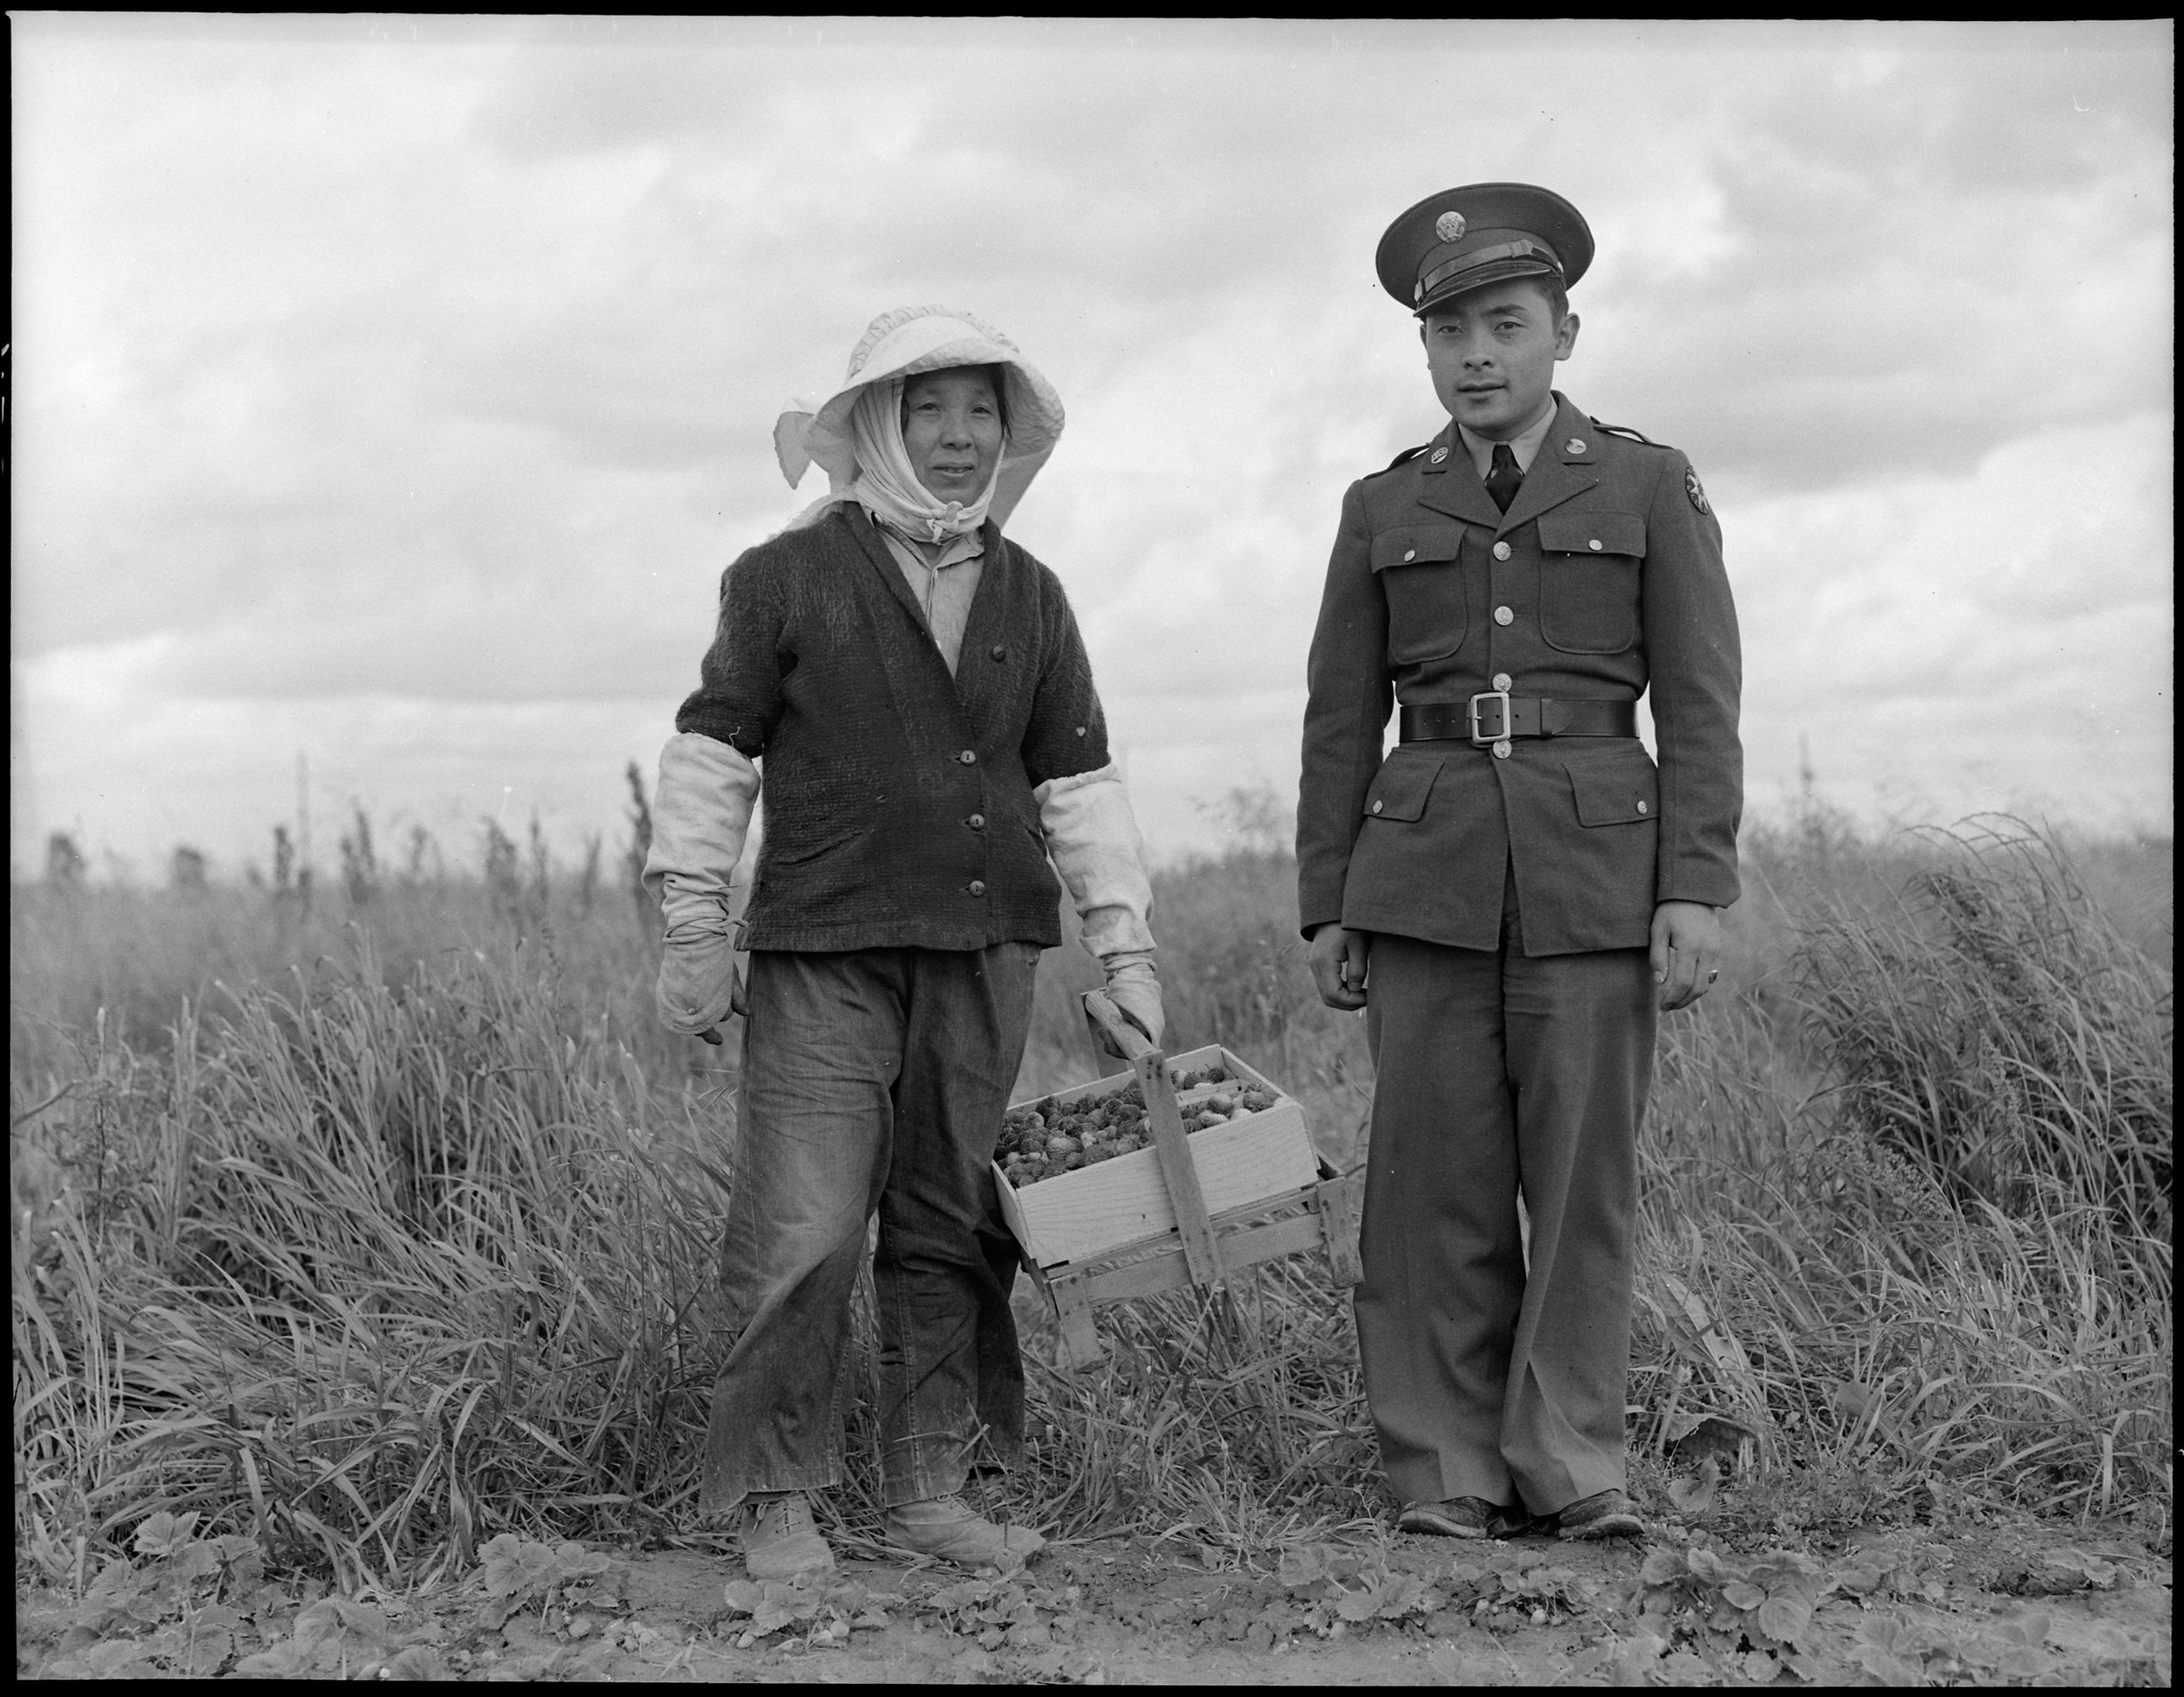 """Florin, Sacramento County, California. A soldier and his mother in a strawberry field. The soldier, age 23, volunteered July 10, 1941, and is stationed at Camp Leonard Wood, Missouri. He was furloughed to help his mother and family prepare for their evacuation. He is the youngest of six years children, two of them volunteers in United States Army. The mother, age 53, came from Japan 37 years ago. Her husband died 21 years ago, leaving her to raise six children. She worked in a strawbery basket factory until last year when her her children leased three acres of strawberries """"so she wouldn't have to work for somebody else"""". The family is Buddhist. This is her youngest son. Her second son is in the army stationed at Fort Bliss. 453 families are to be evacuated from this area."""